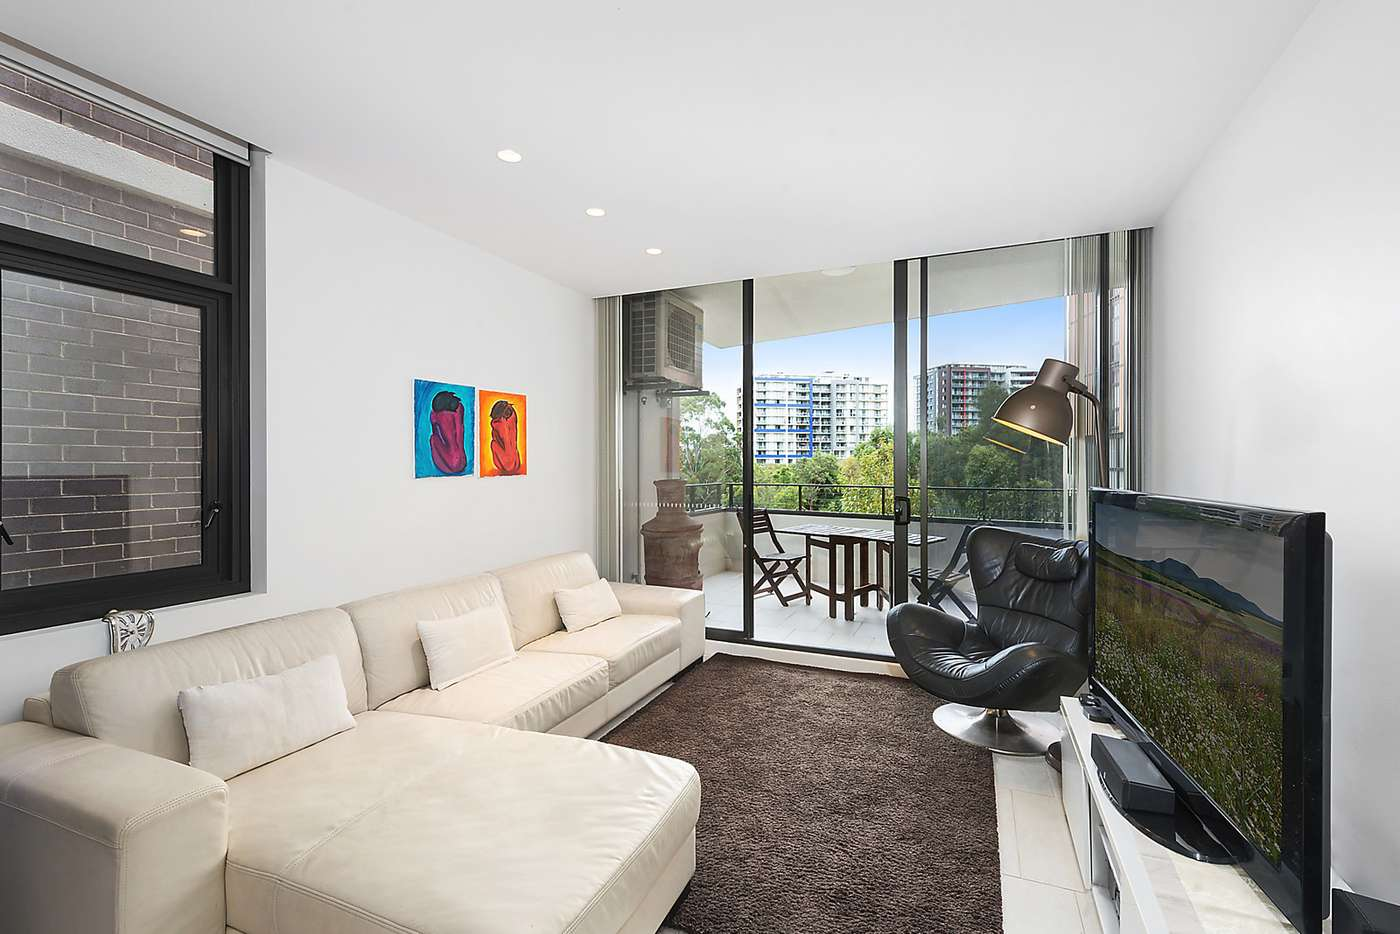 Main view of Homely apartment listing, 113C/3 Broughton Street, Parramatta NSW 2150